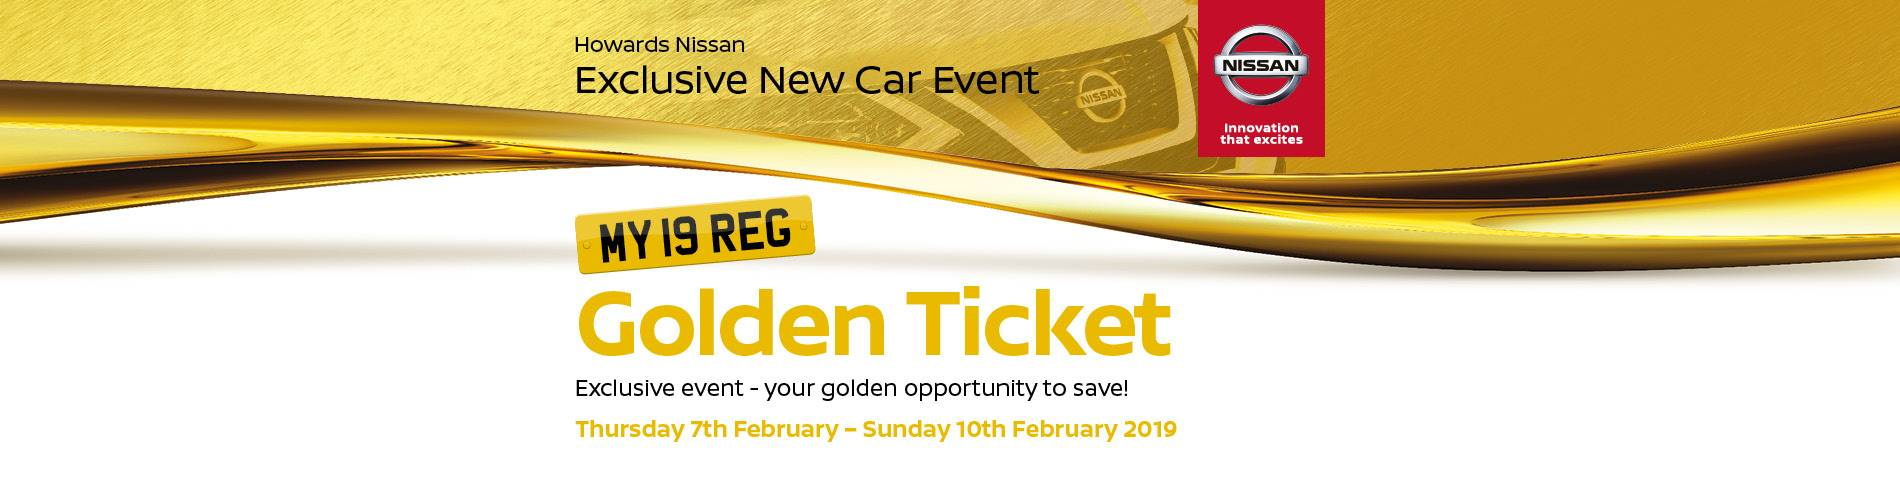 Nissan Golden Ticket